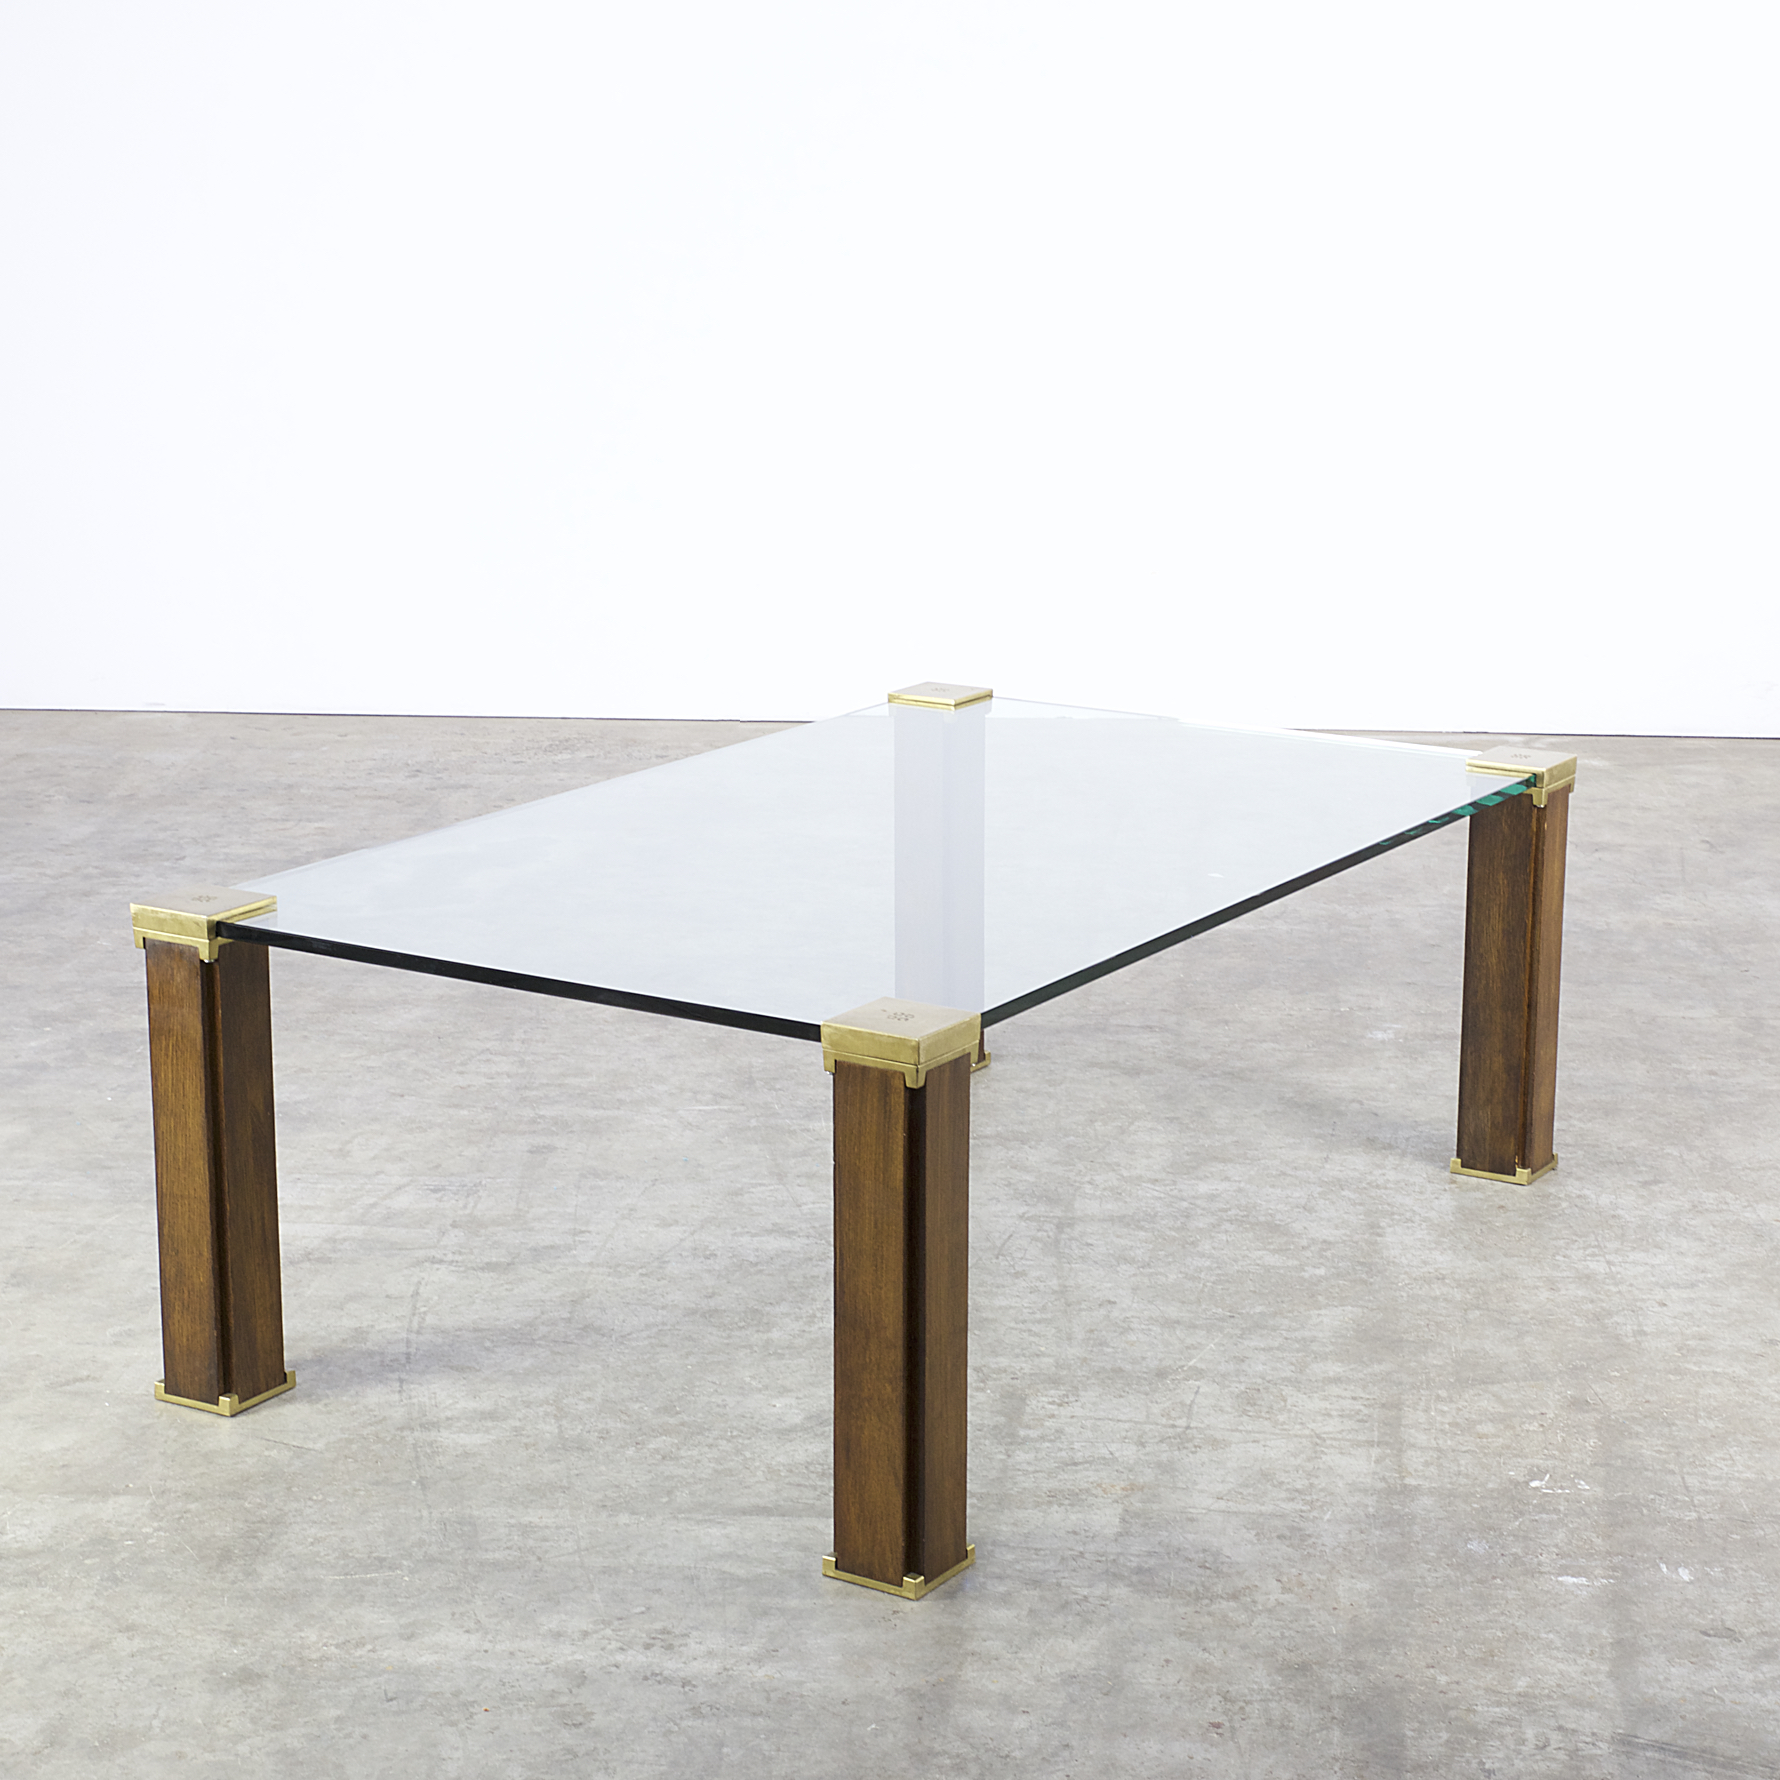 70s Peter Ghyczy T66 Coffee Table Glass, Brass, Teak